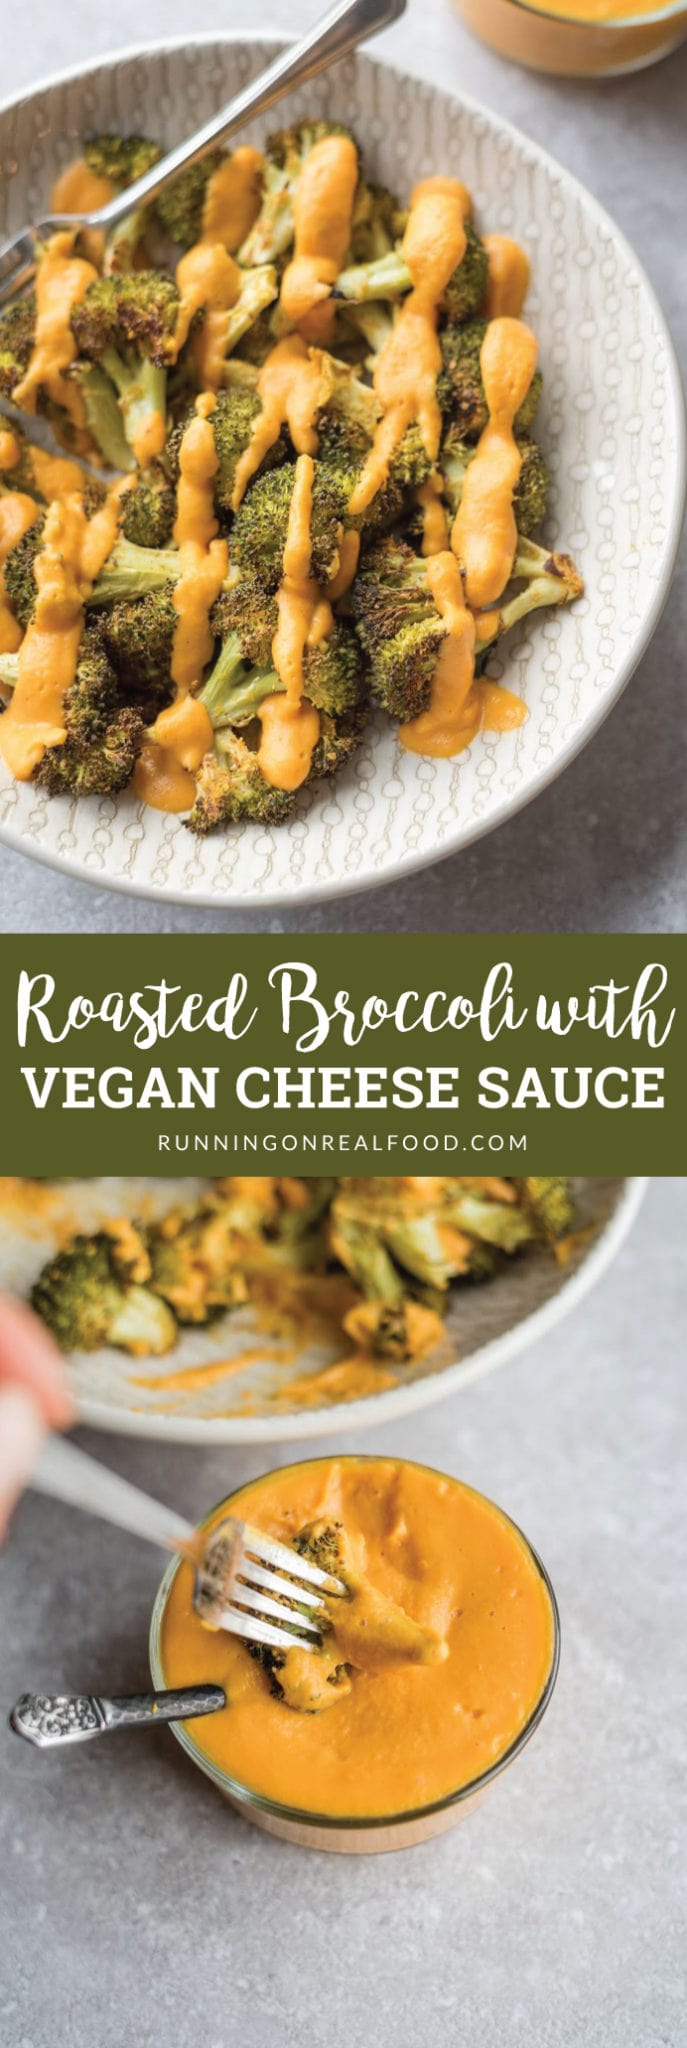 Try this amazingly smooth and creamy, oil-free vegan cheese sauce over tender but crispy cheesy roasted broccoli for a healthy, nutritious side or snack.